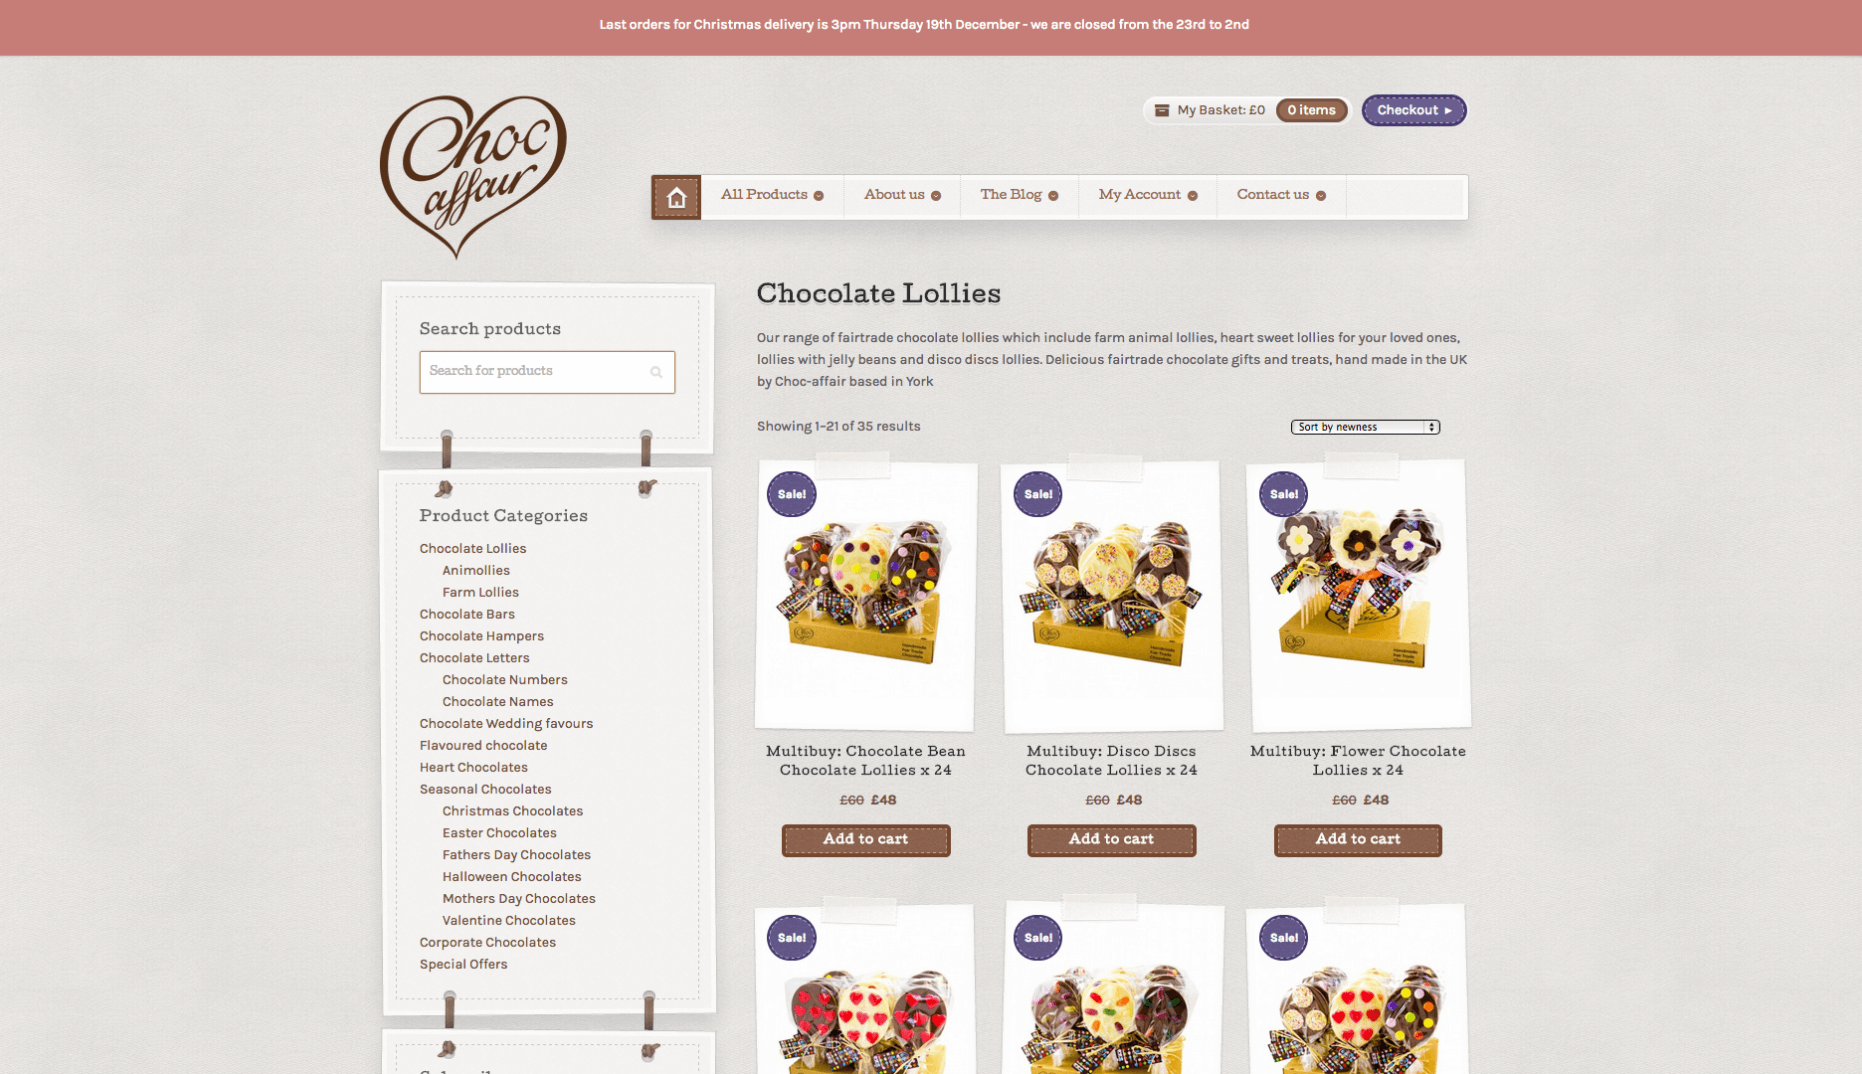 Screen Shot 2013 12 23 at 16.24.45 e1507565681539 - Website redesign for chocolate manufacturer